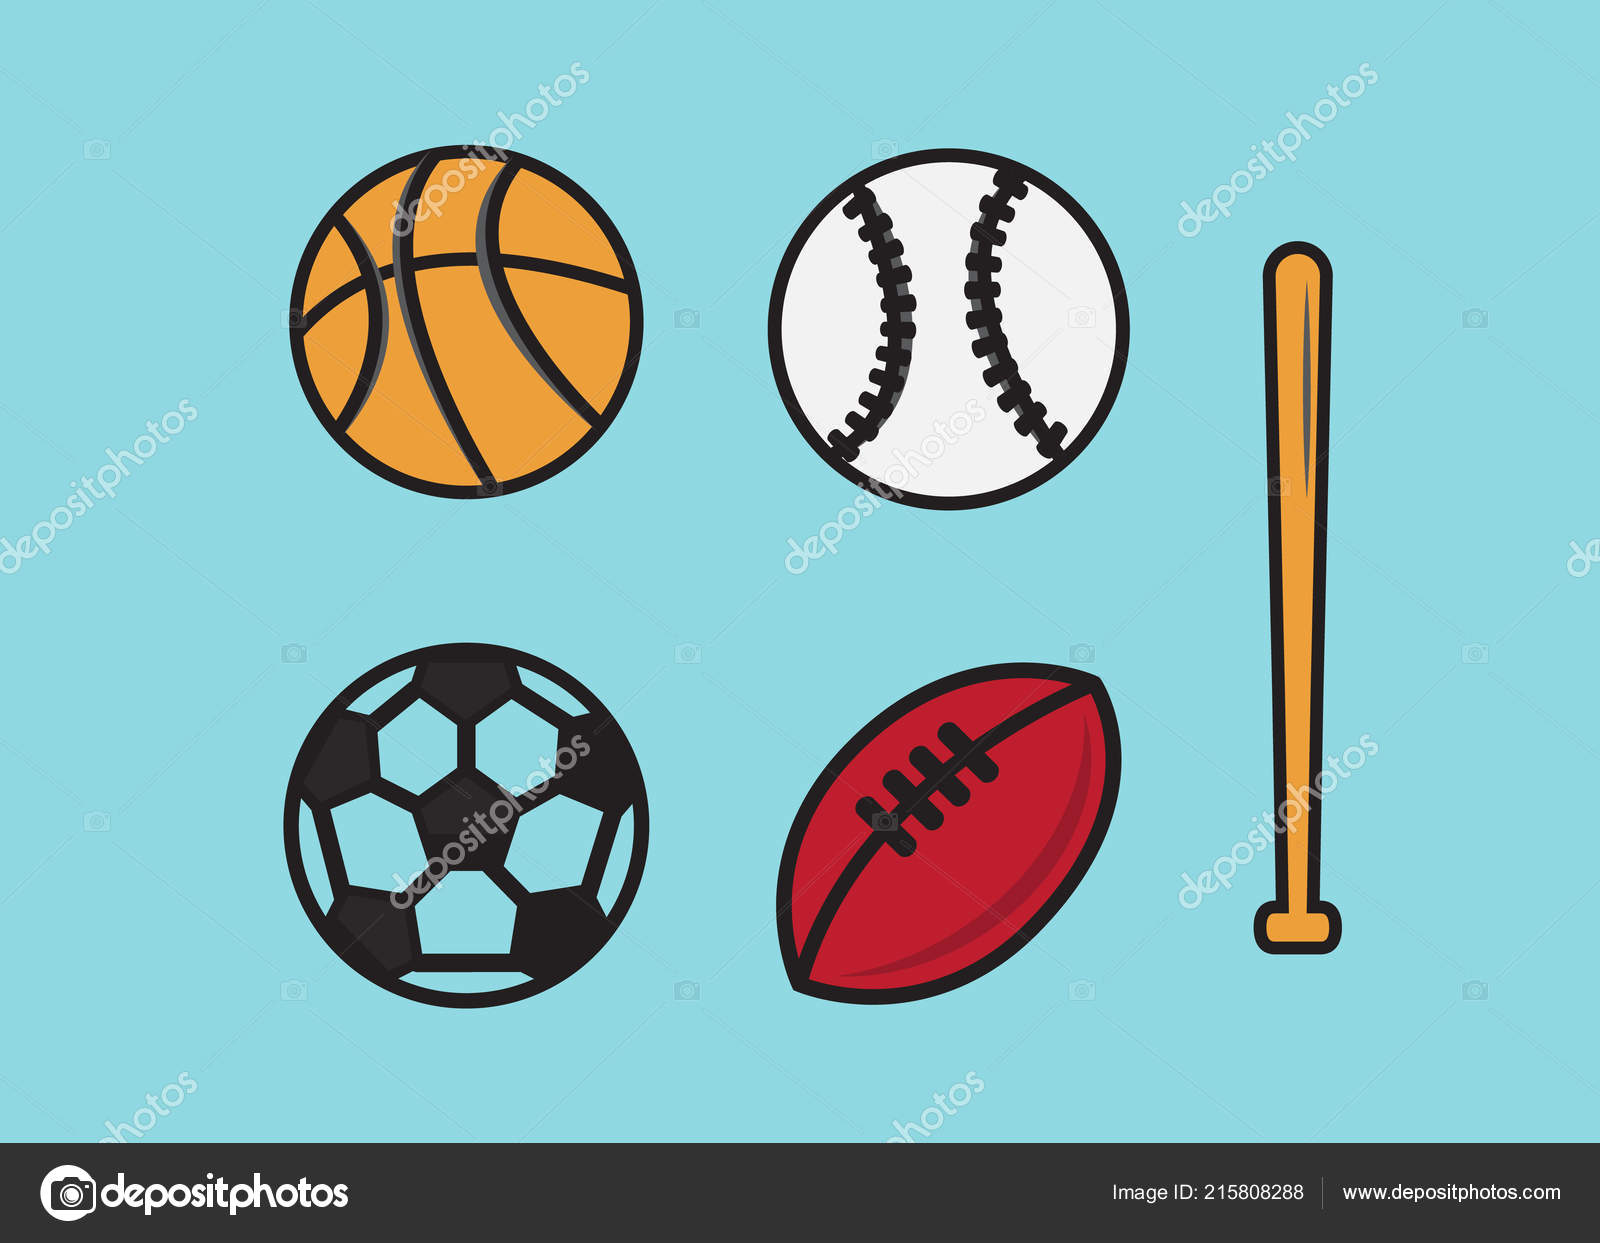 Pictures Cartoon Sports Balls Sports Balls Cartoon Ball Set Soccer Rugby Basketball Football Balls Stock Vector C Myub 215808288